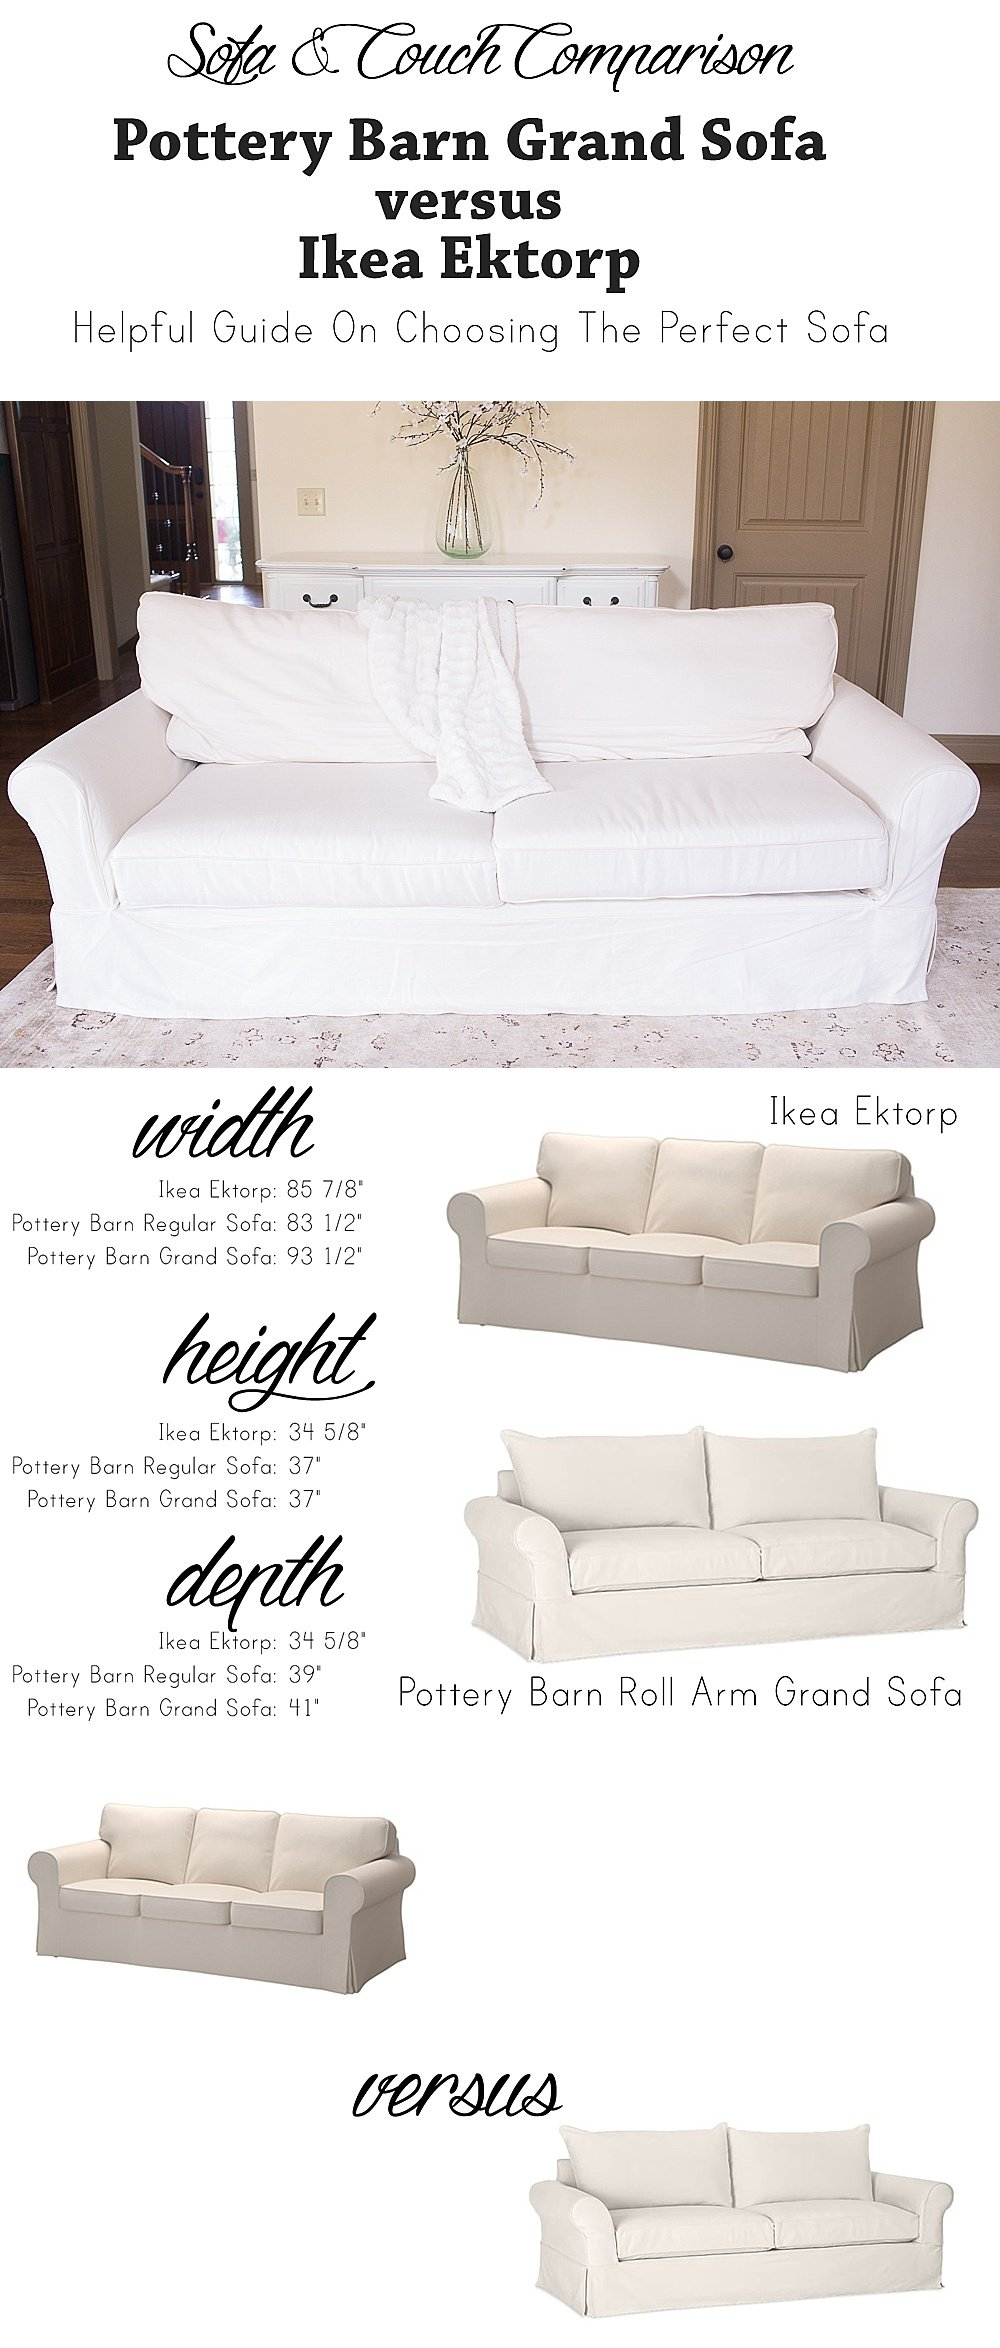 Ikea Versus Pottery Barn Sofa How To Choose A Couch And Sofa